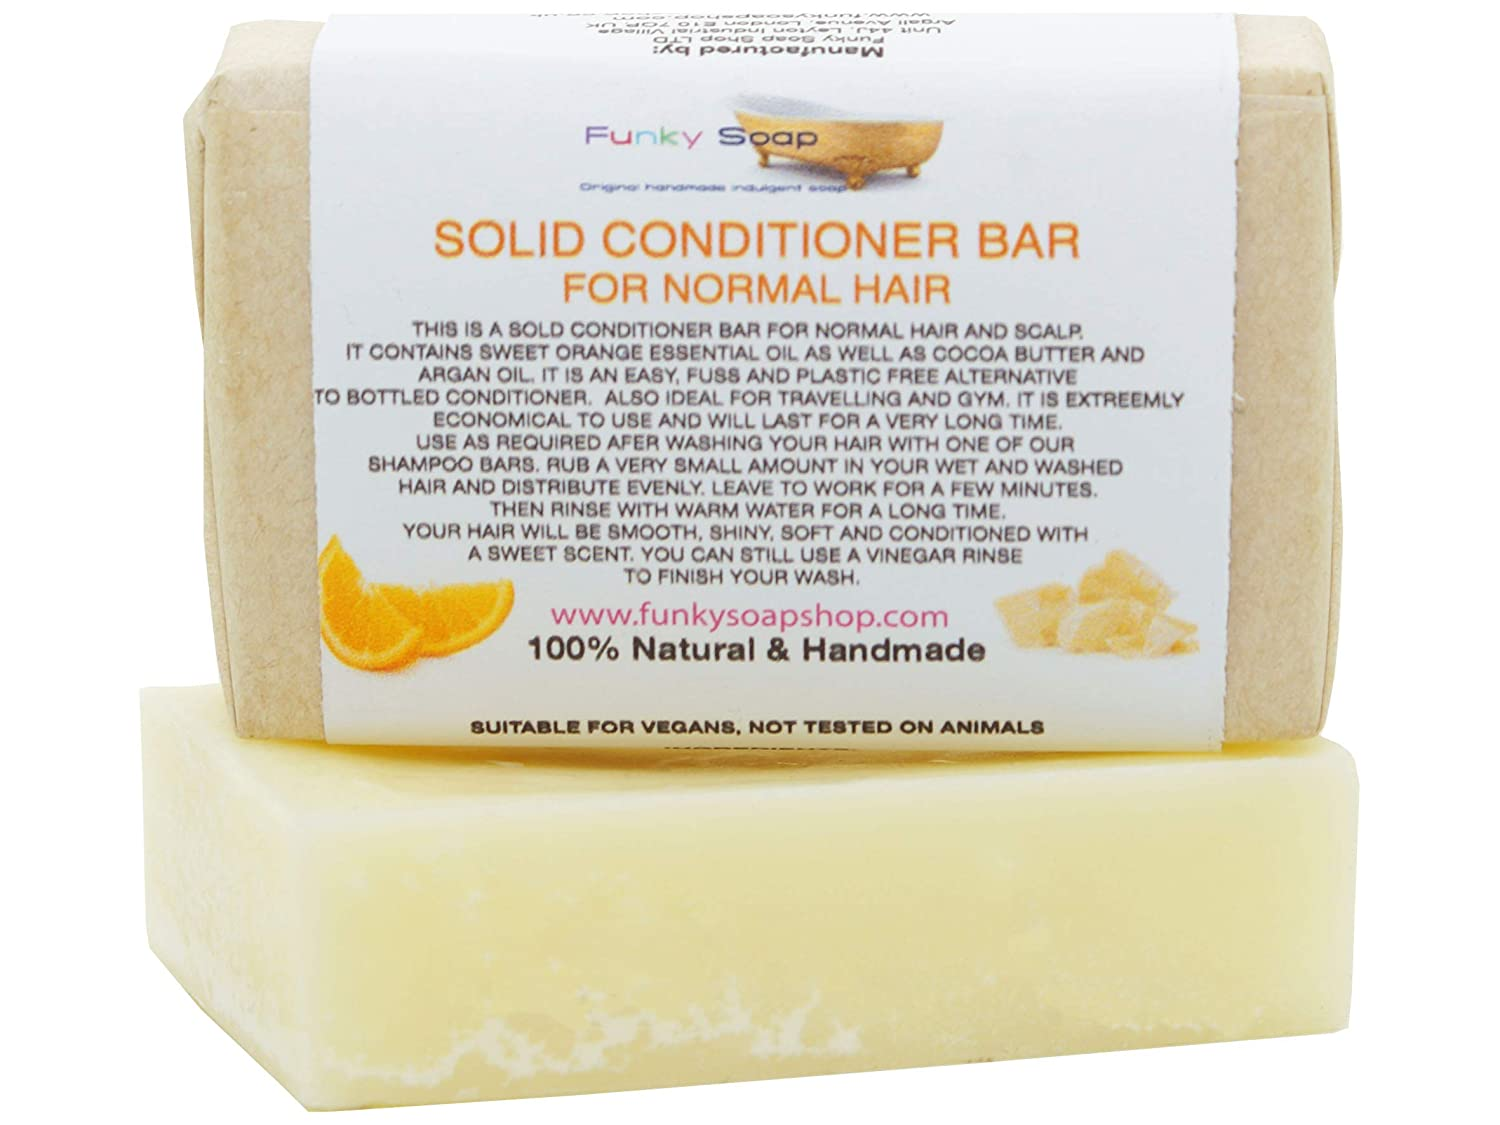 1x Solid Conditioner Bar for Normal hair, 95g, Handmade and economical Funky Soap